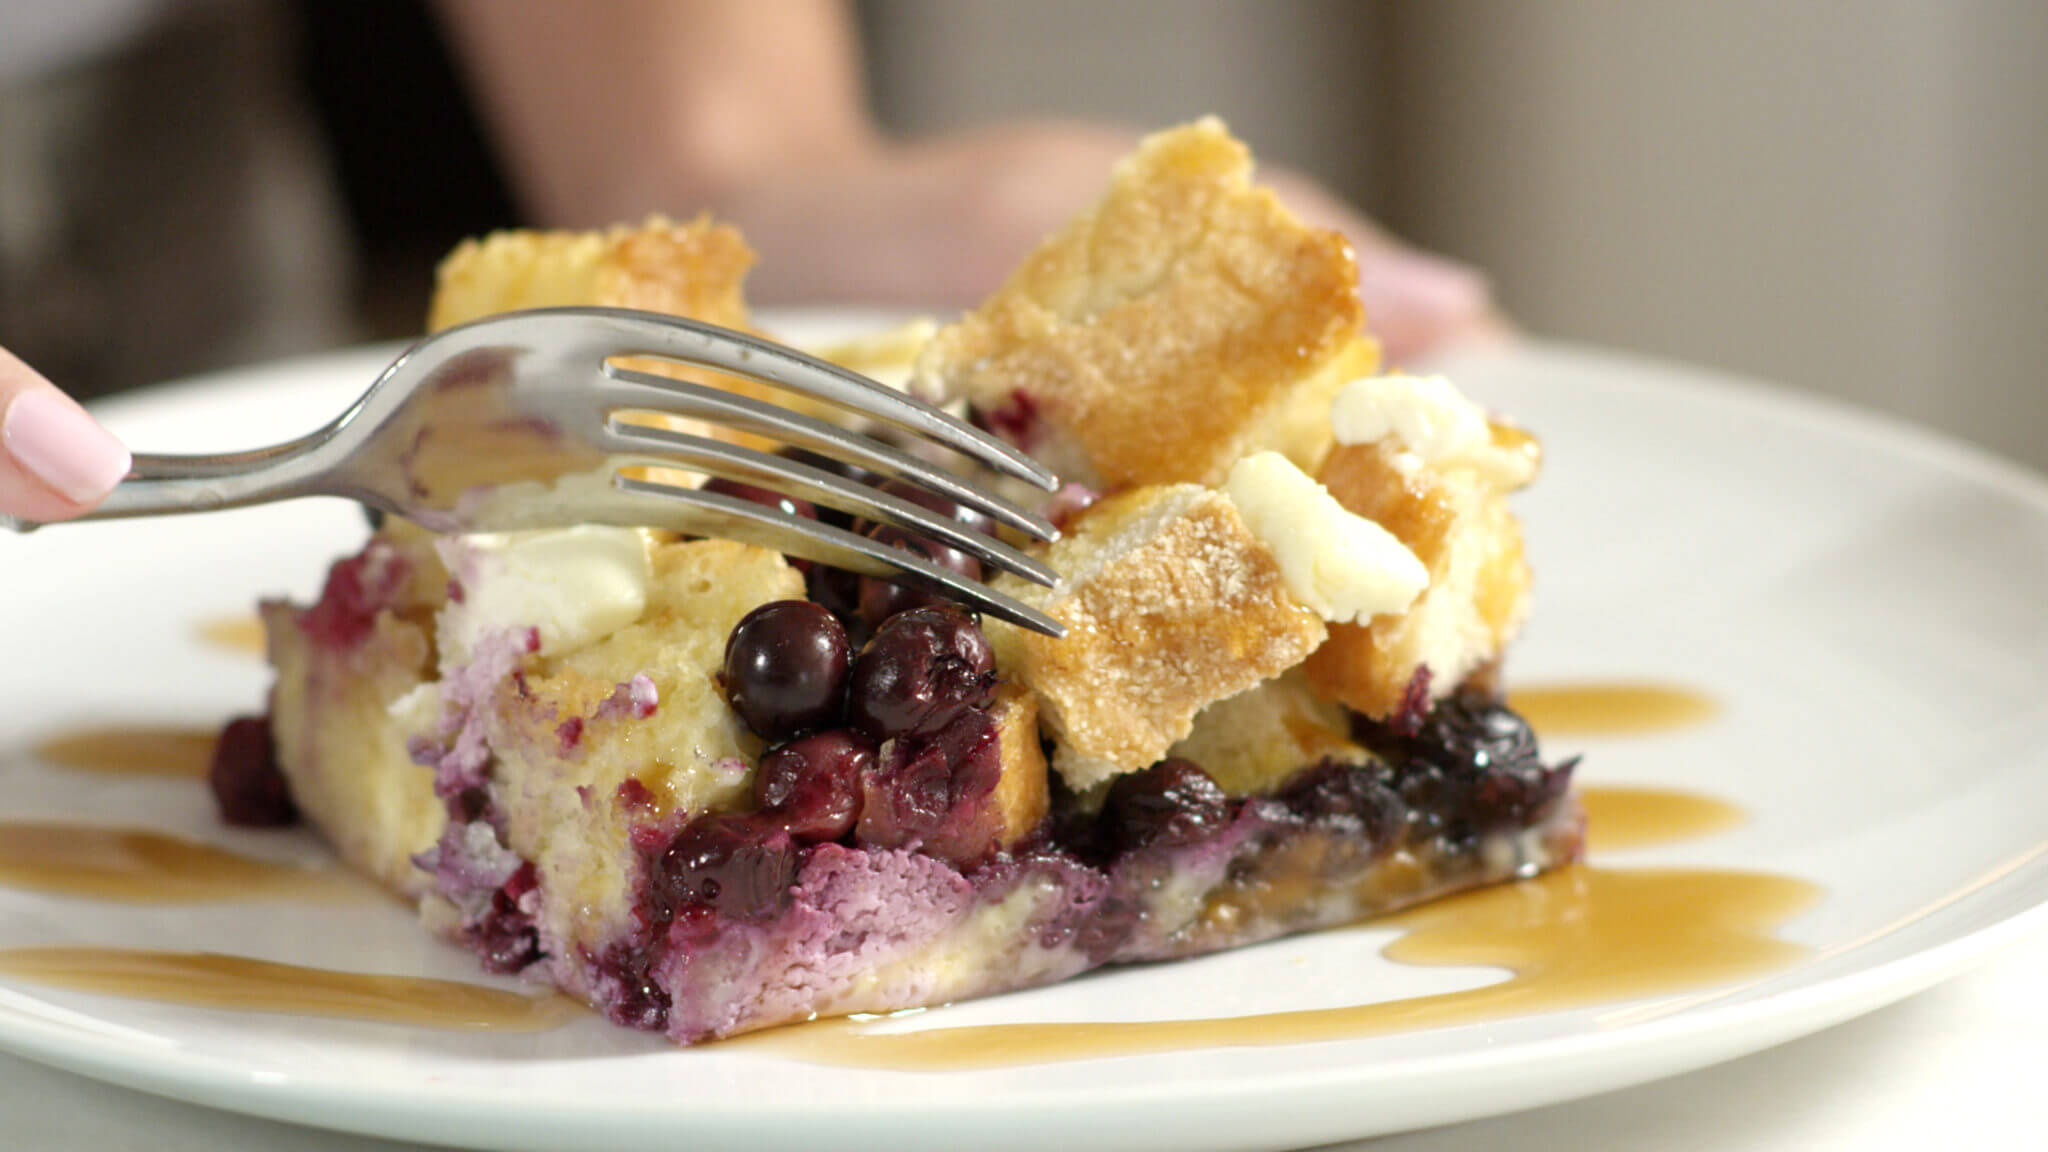 Blueberry Breakfast Casserole Recipe Wish Farms